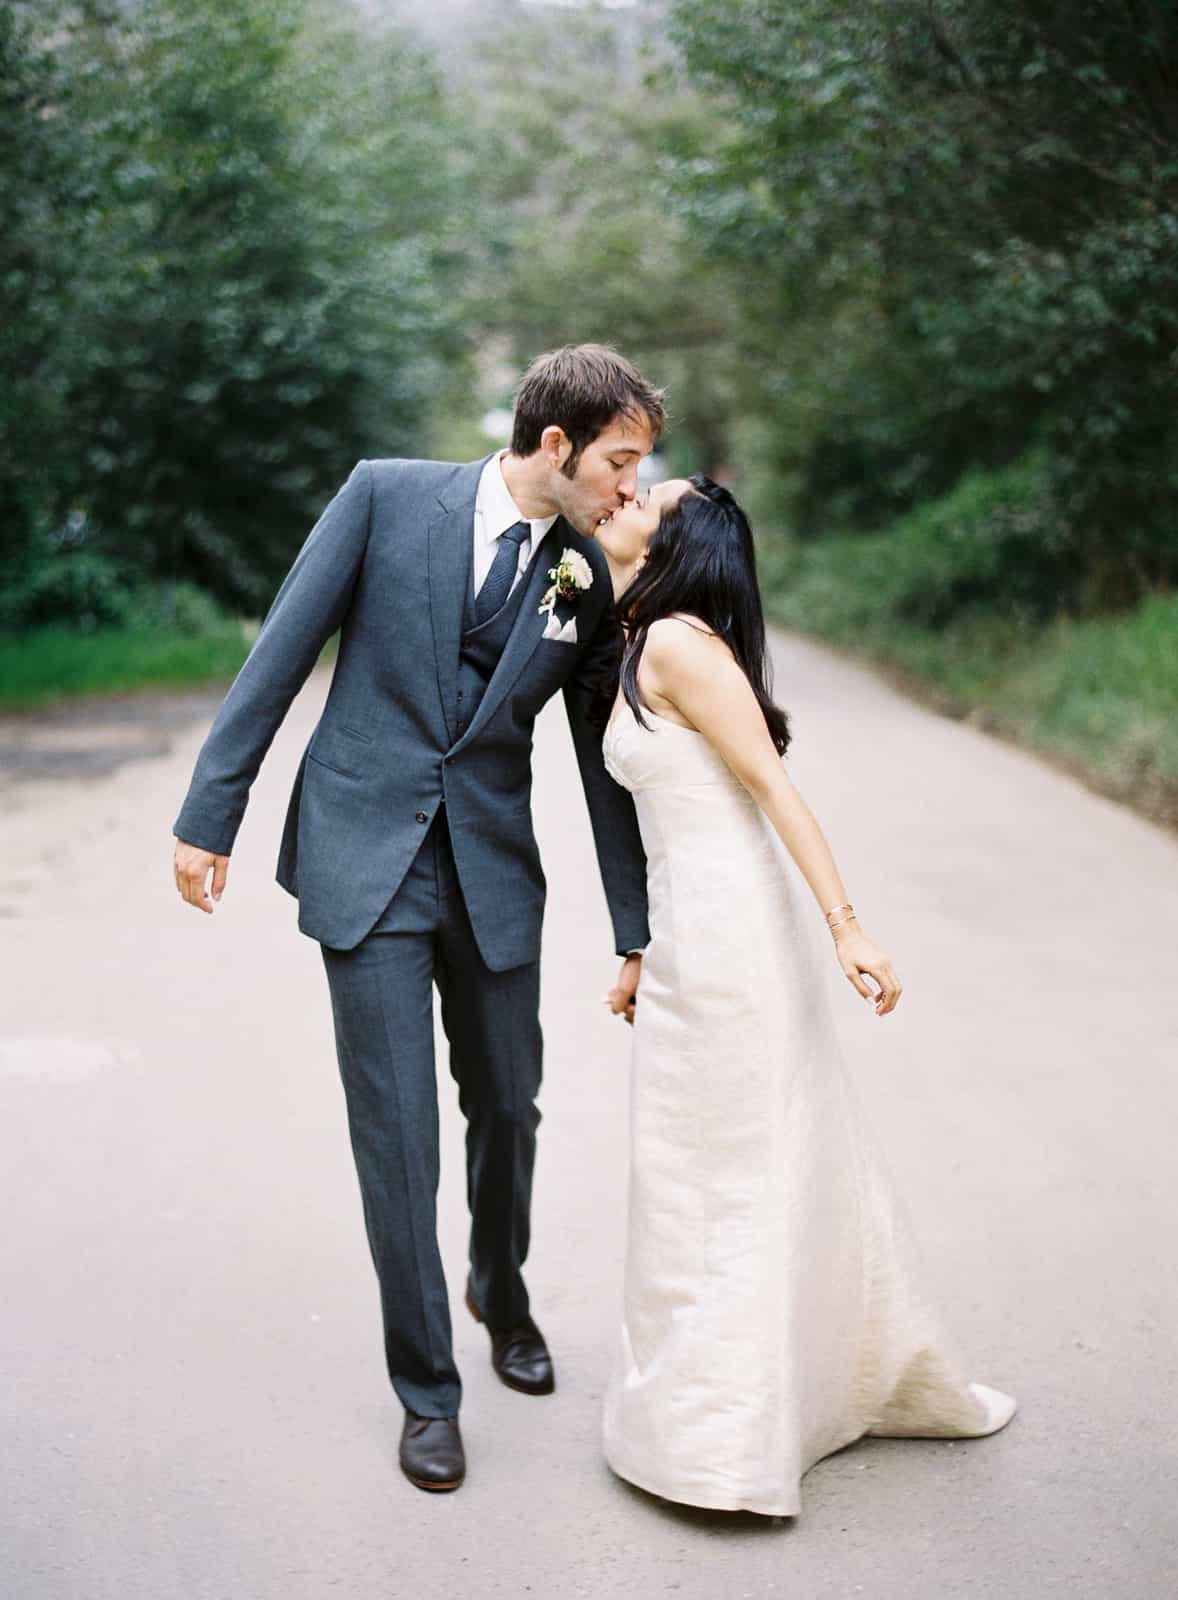 married couple kissing and walking